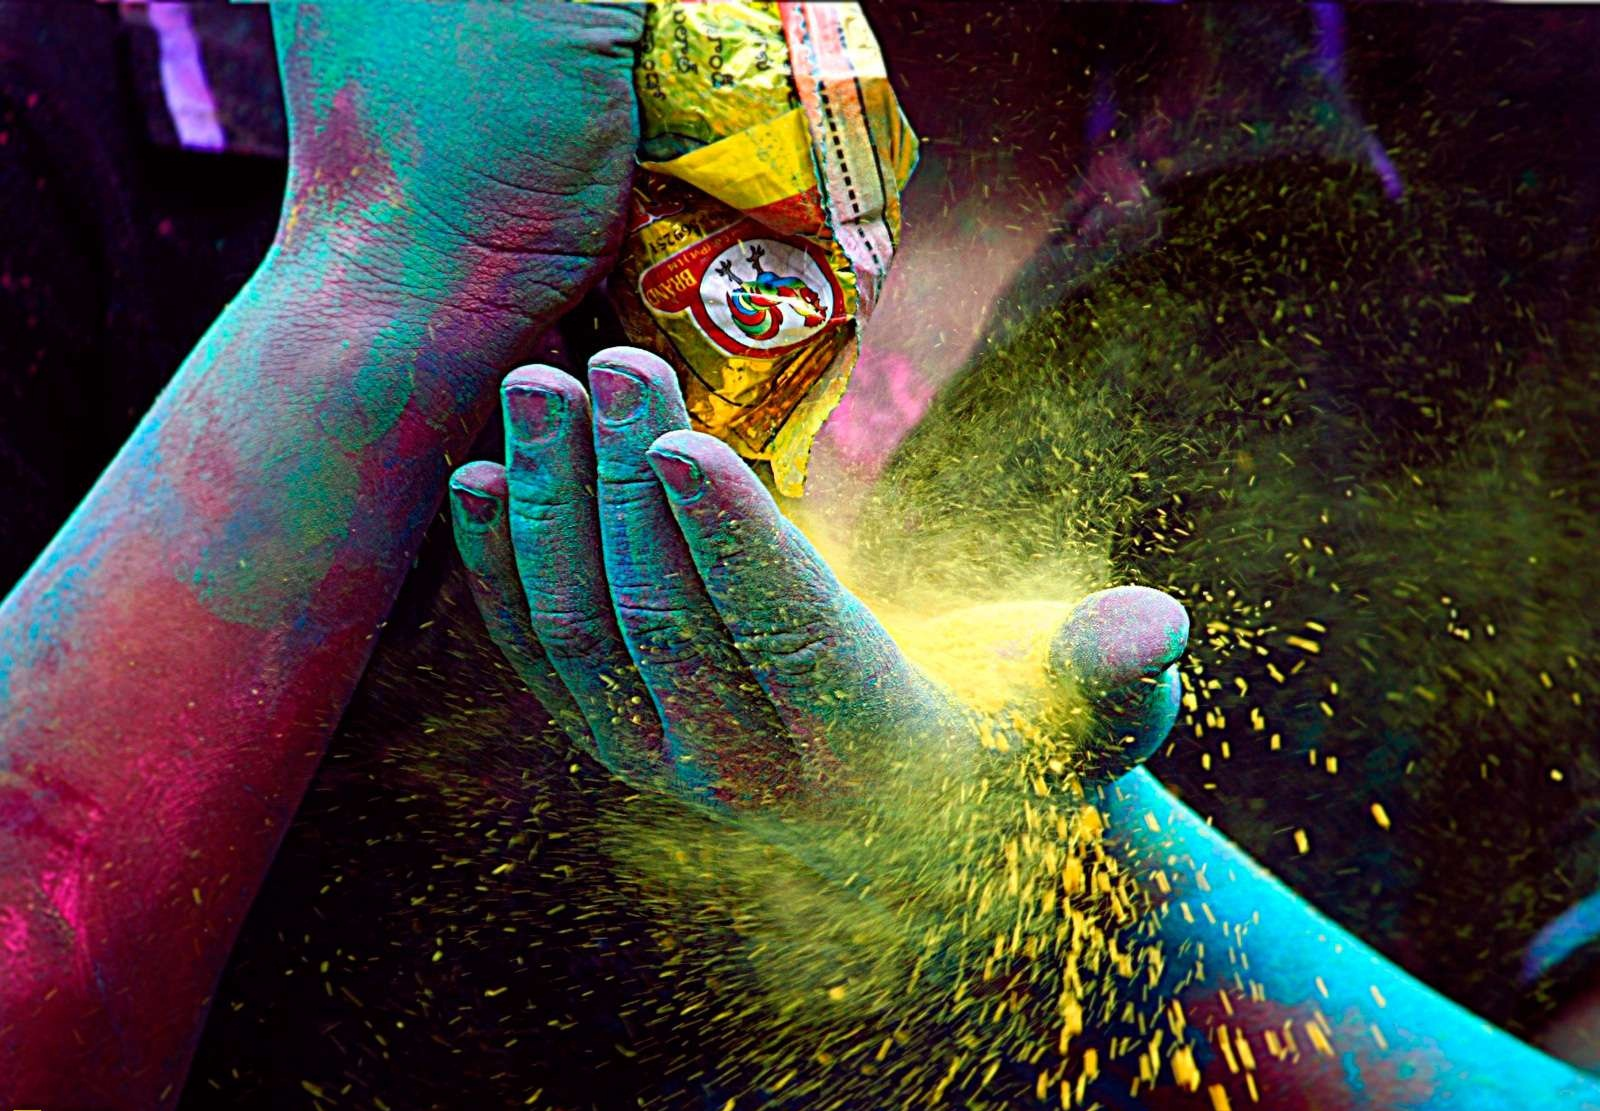 http://3.bp.blogspot.com/-P8qnH-_x3P0/UTxLvpuVlNI/AAAAAAAAAP8/yvkJn5iy7Cc/s1600/65220-wallpapers-holi-Happy-World-.jpg